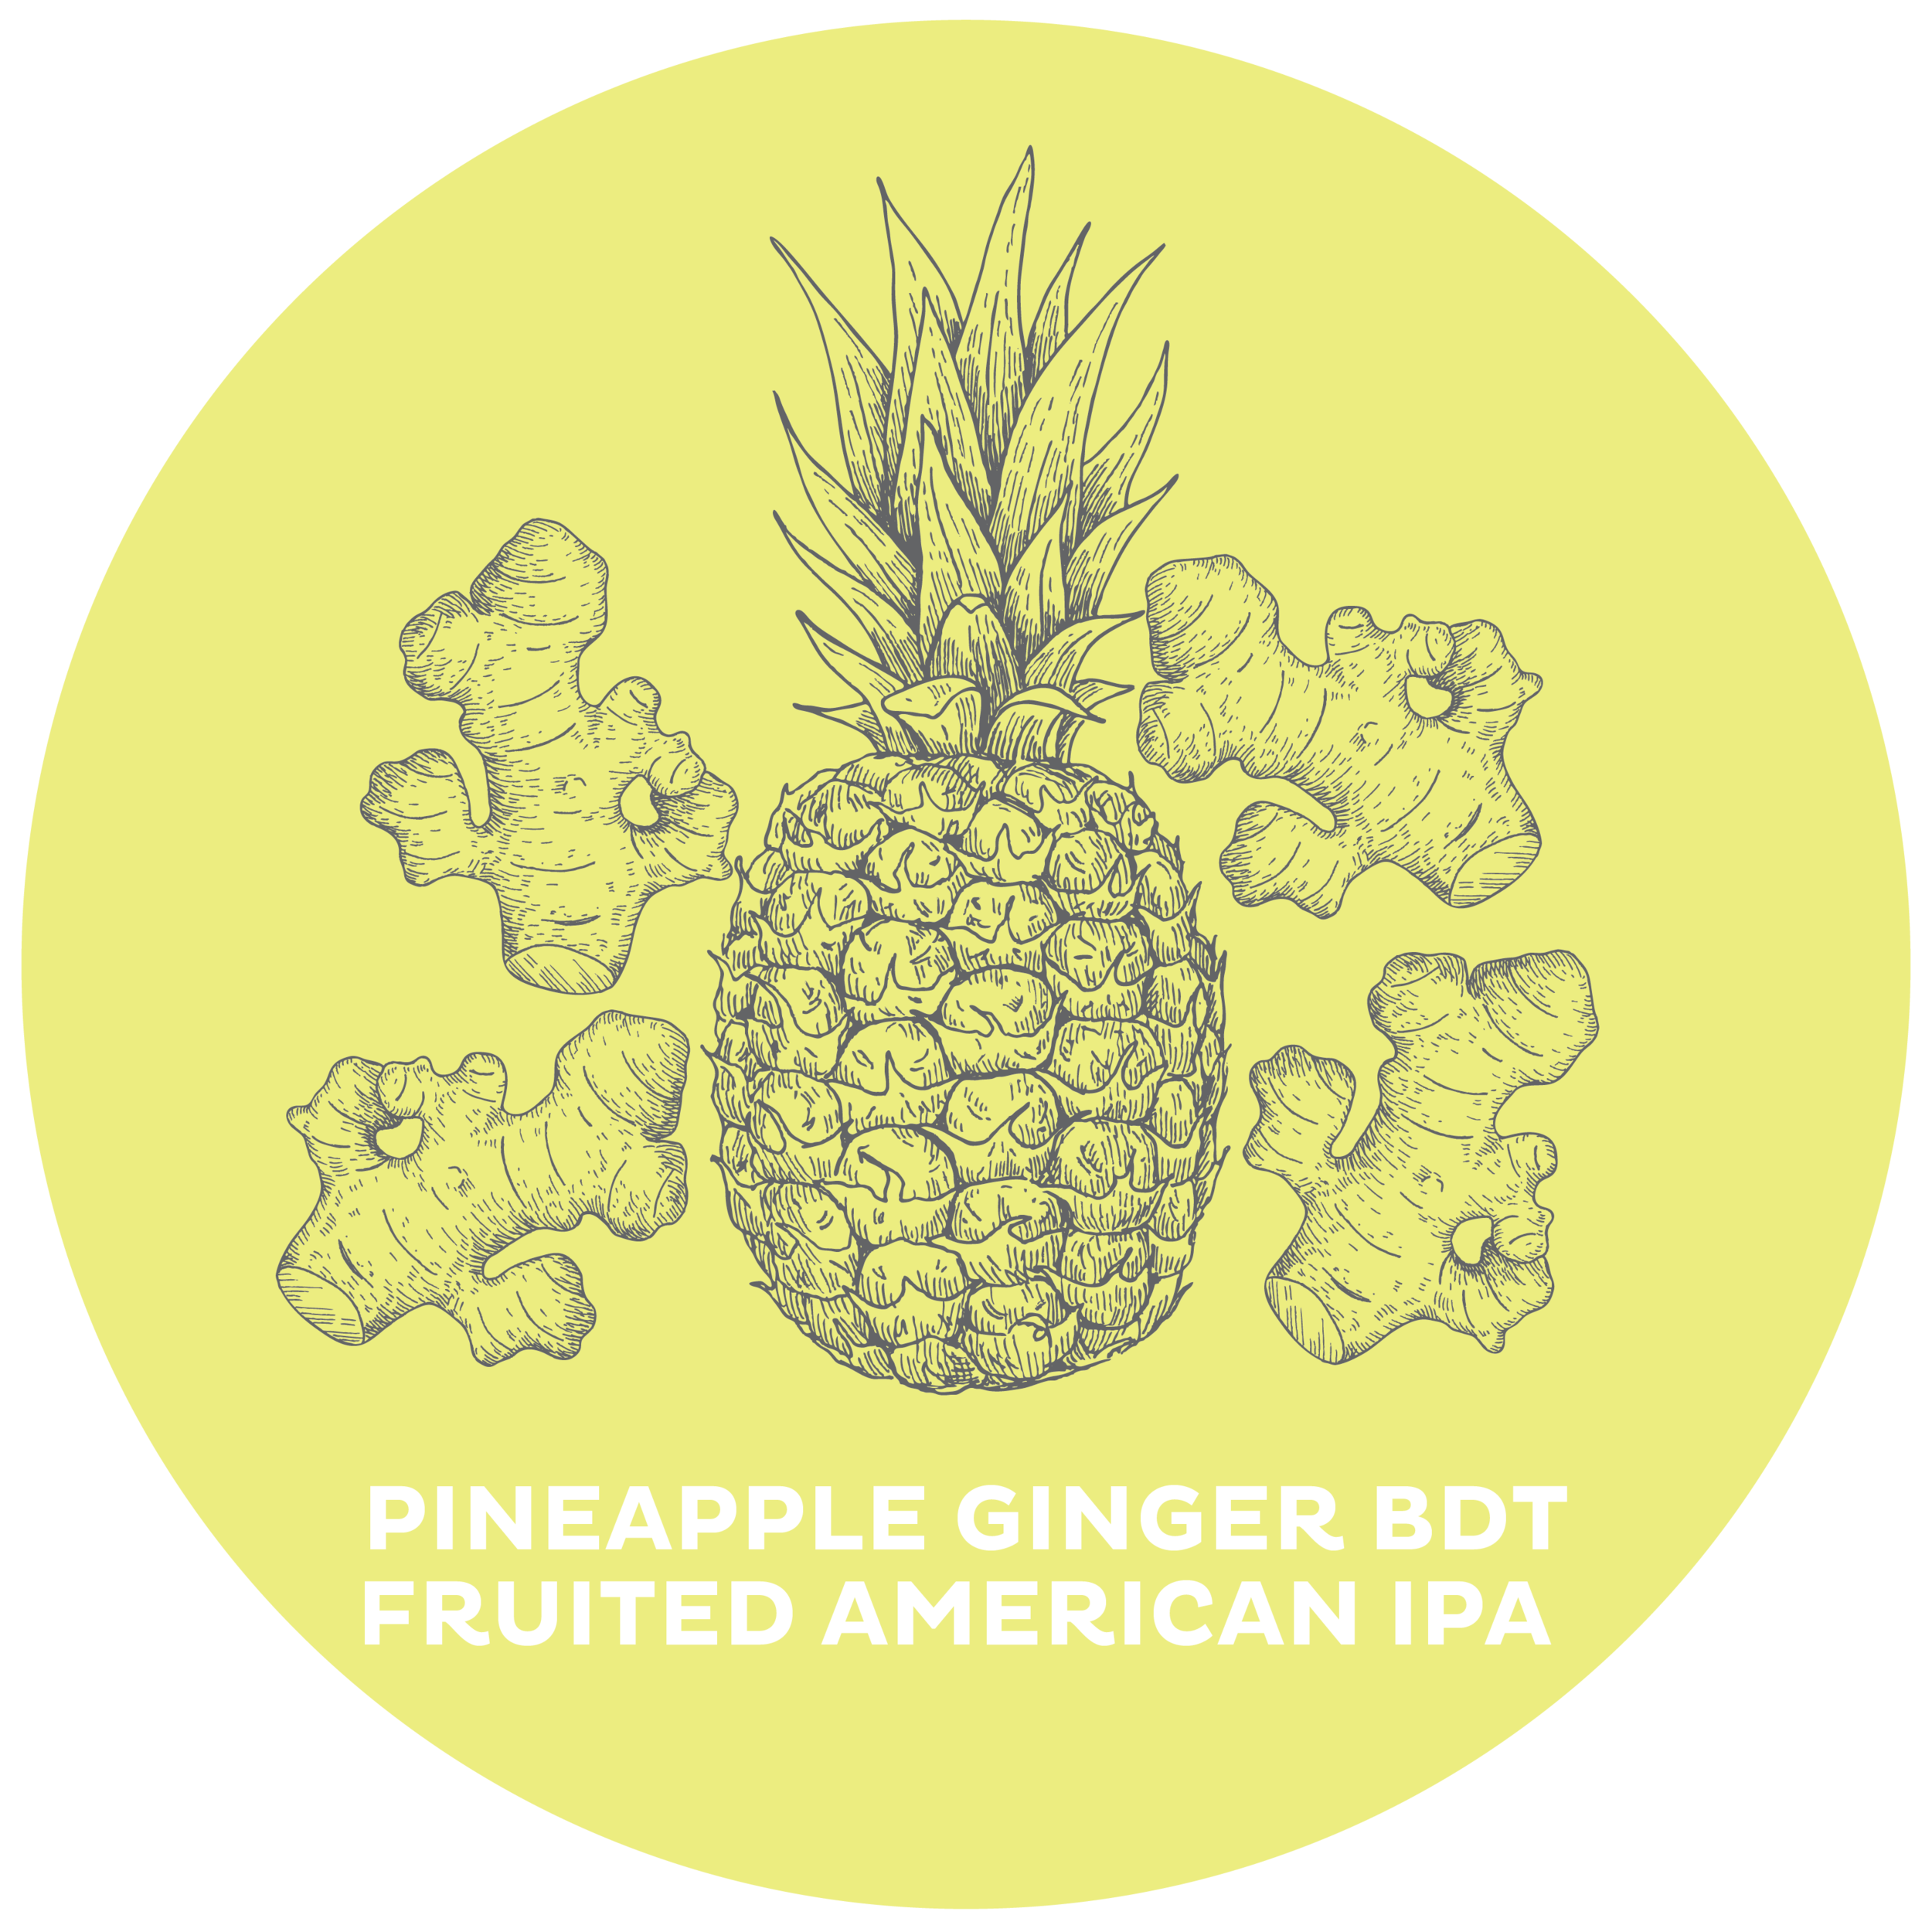 PineappleGingerBDT-01.png